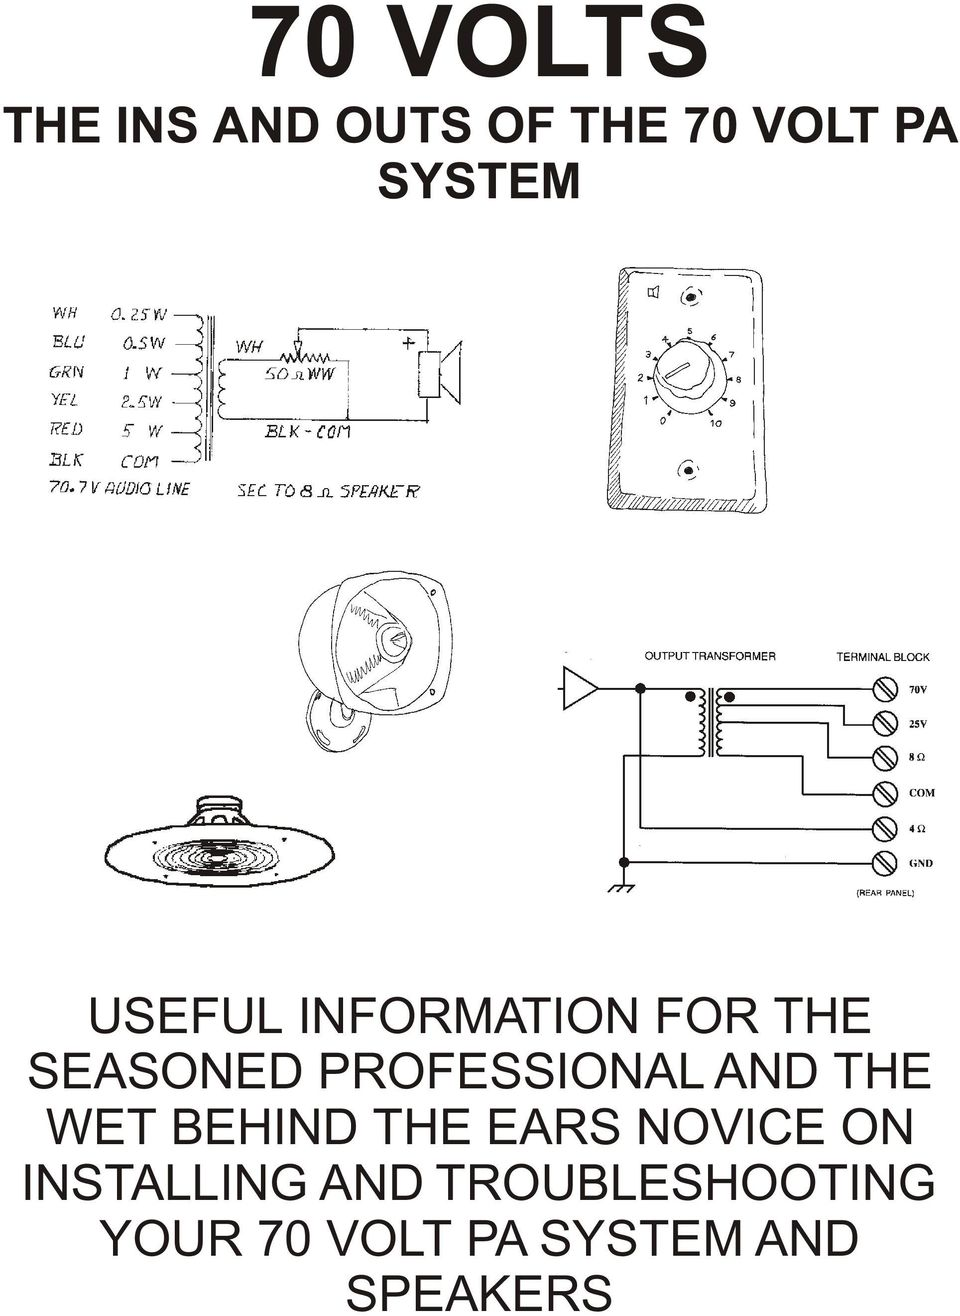 WRG-1178] 70v Wiring Diagram on speaker diagram, l pad volume control diagram, live band pa setup diagram, 70 volt horn, 70v system diagram, water heater installation diagram, simple pa system diagram,